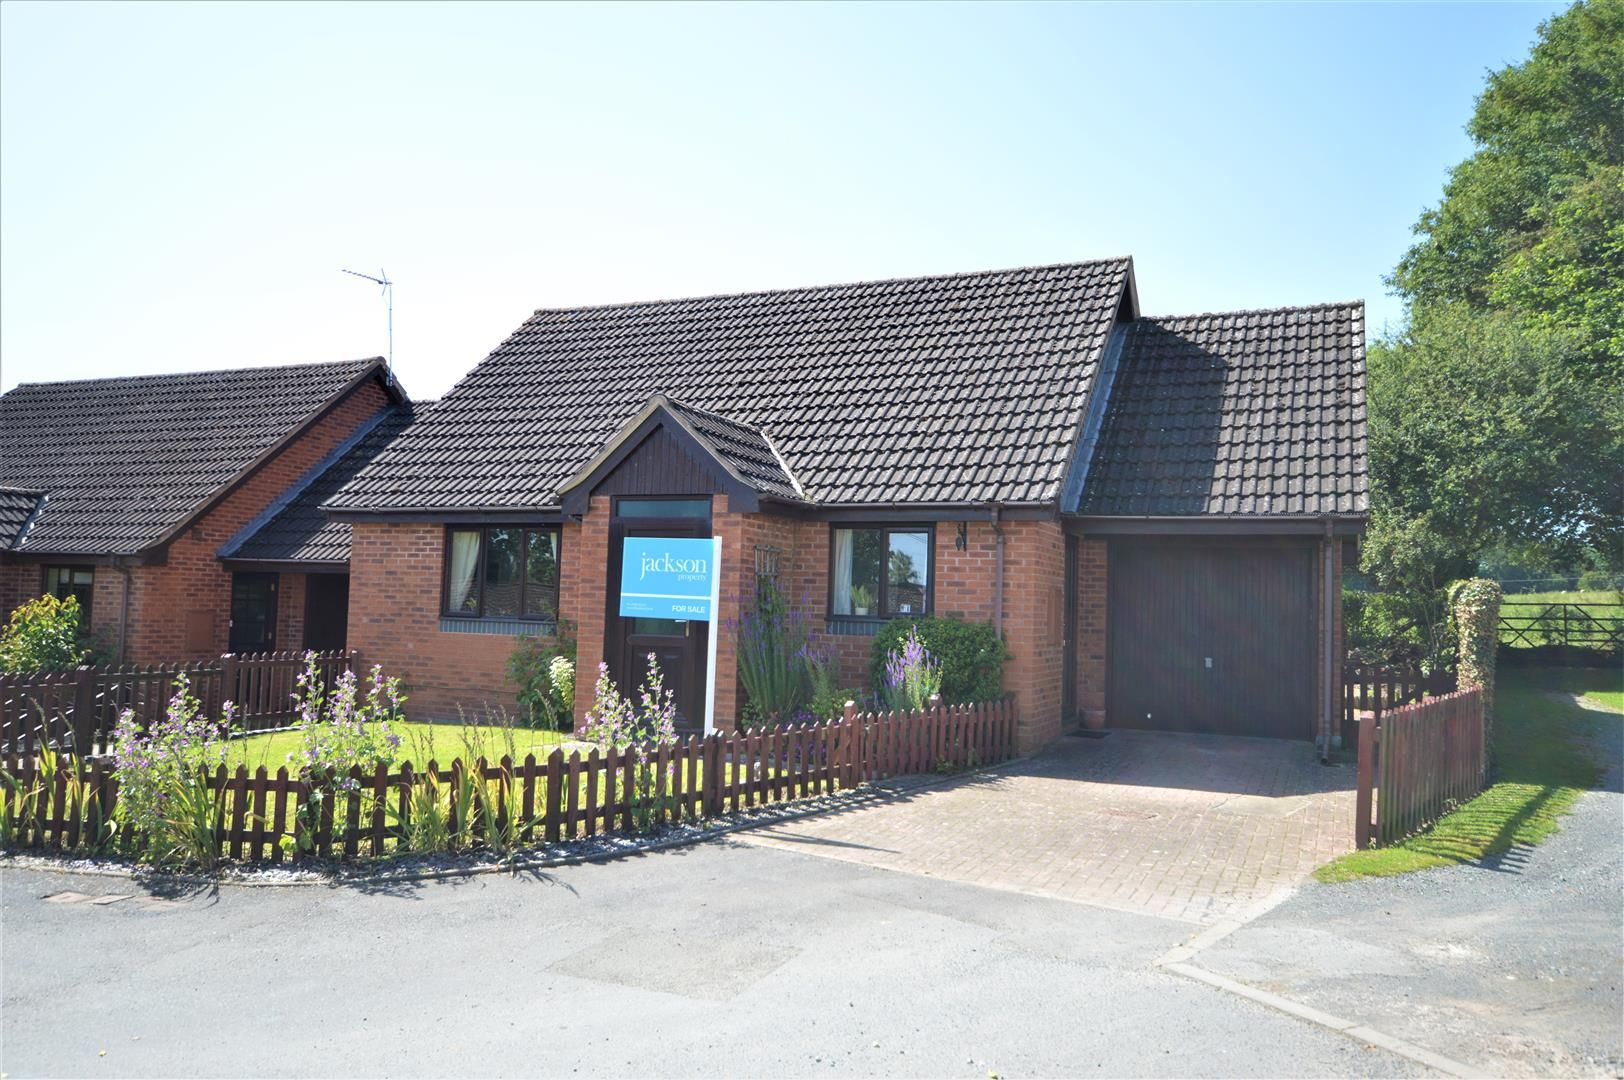 2 bed detached-bungalow for sale in Almeley, HR3